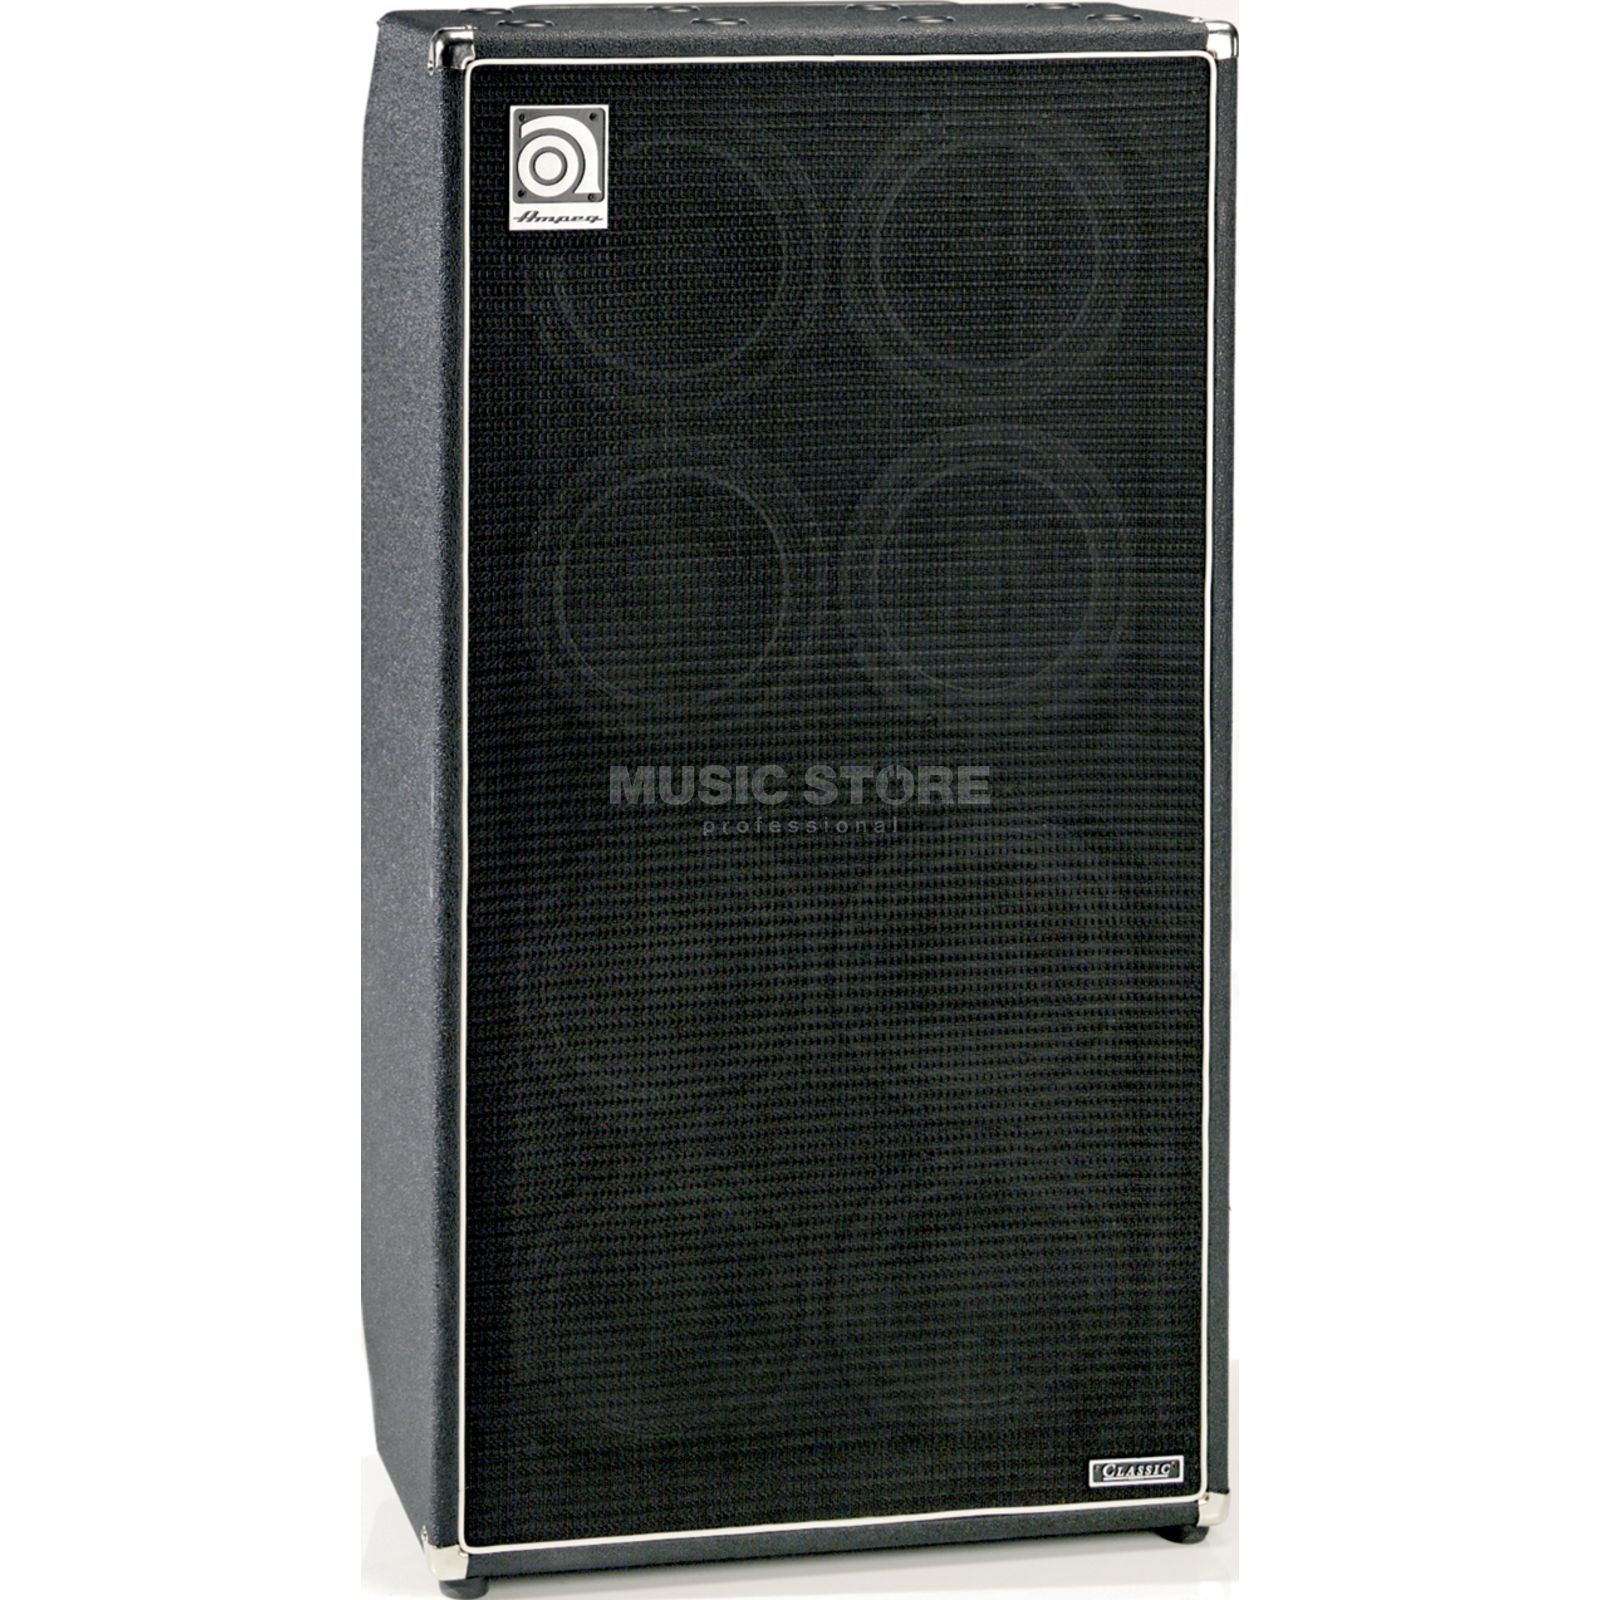 "Ampeg SVT 810 E Box 800W (4 Ohm) 8x10"" Speaker Product Image"